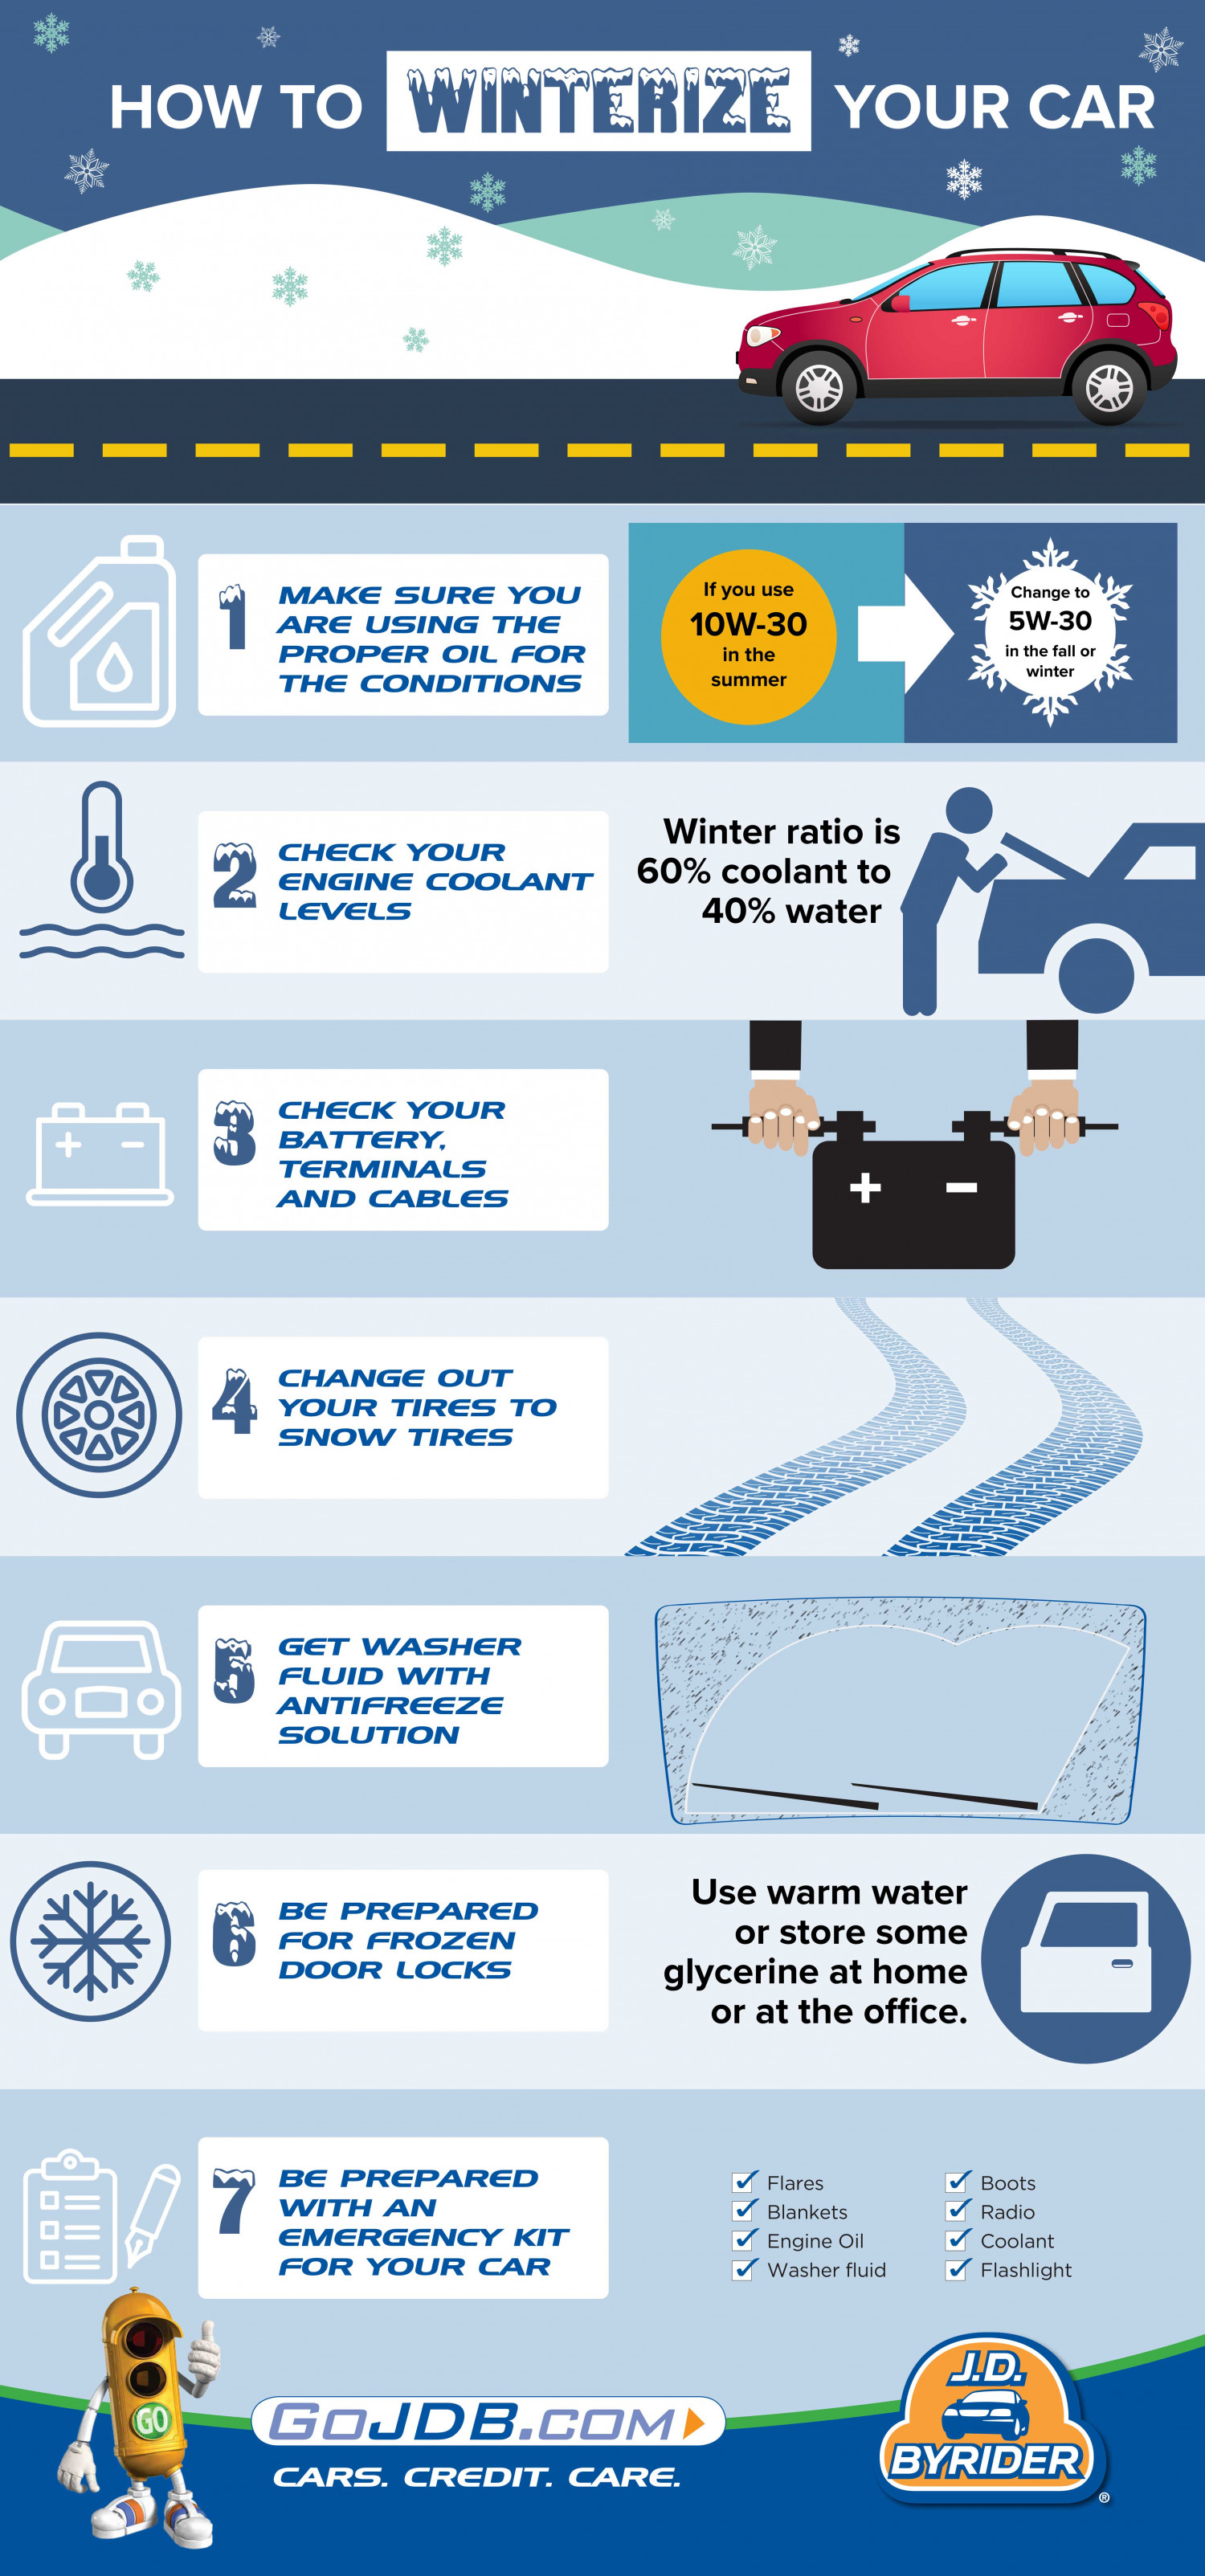 How to Winterize Your Car Infographic